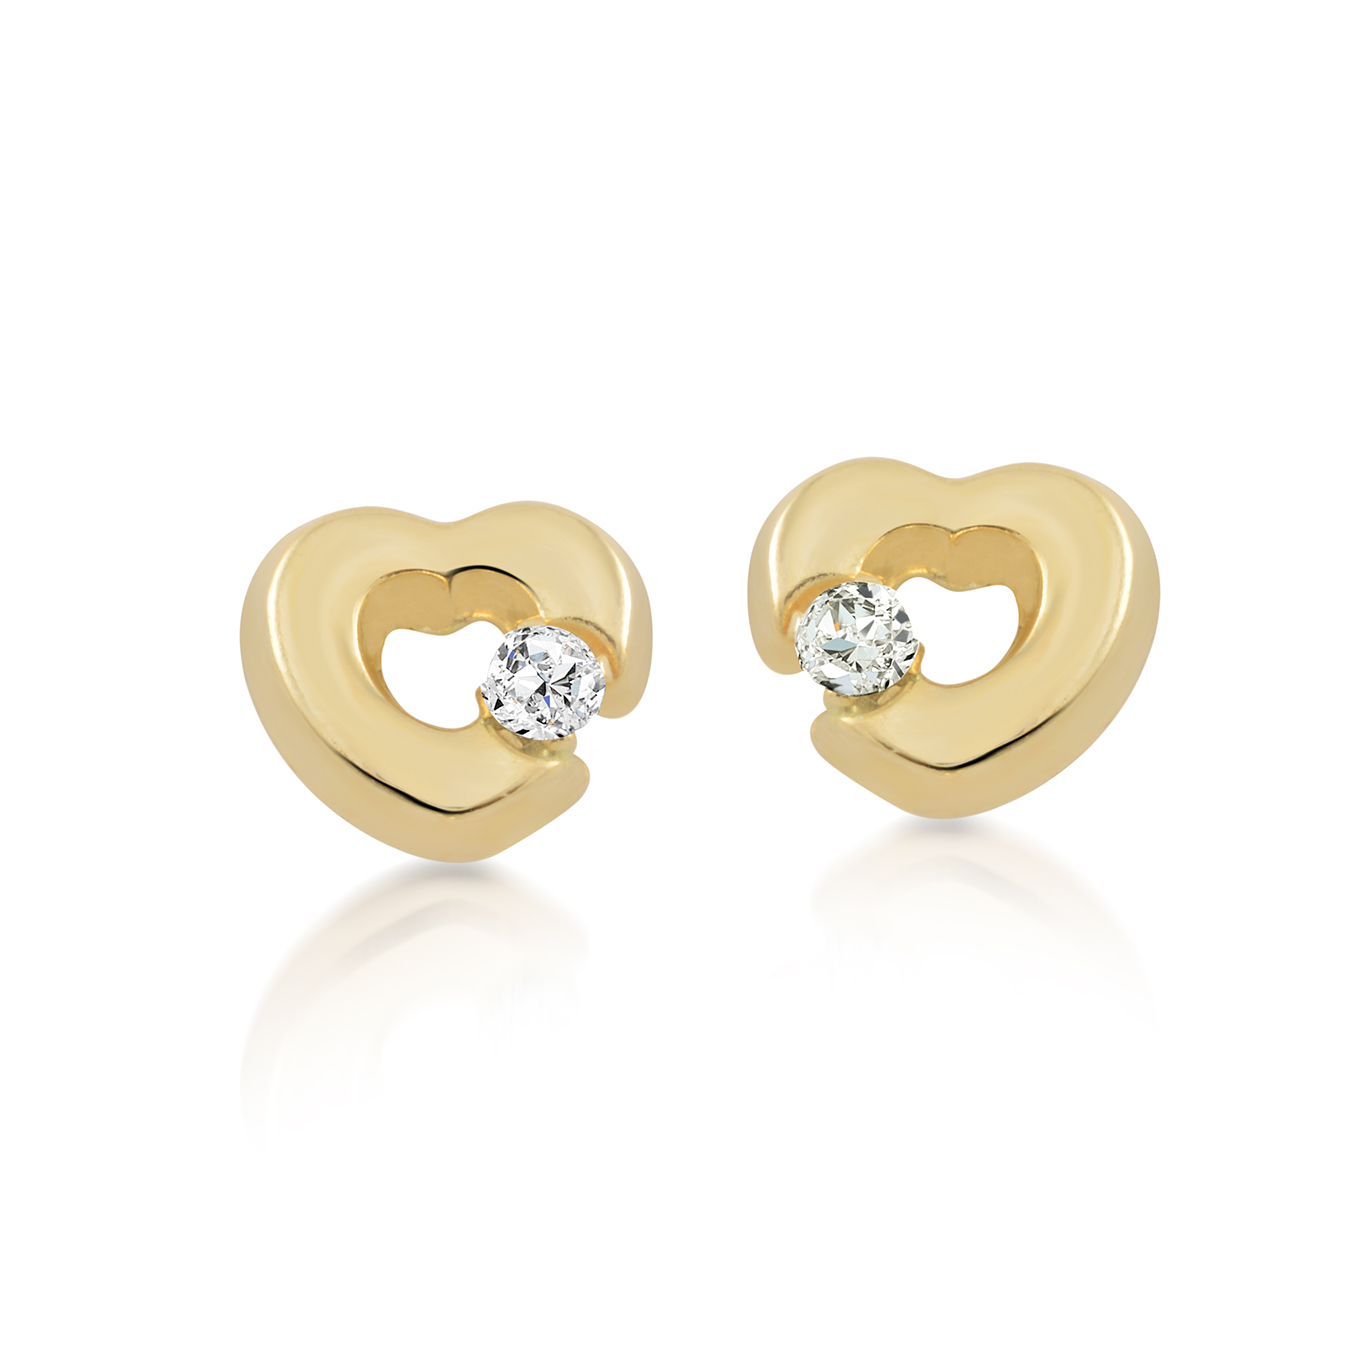 Heart stud earrings for babies with cubic zirconia - in 10K yellow gold